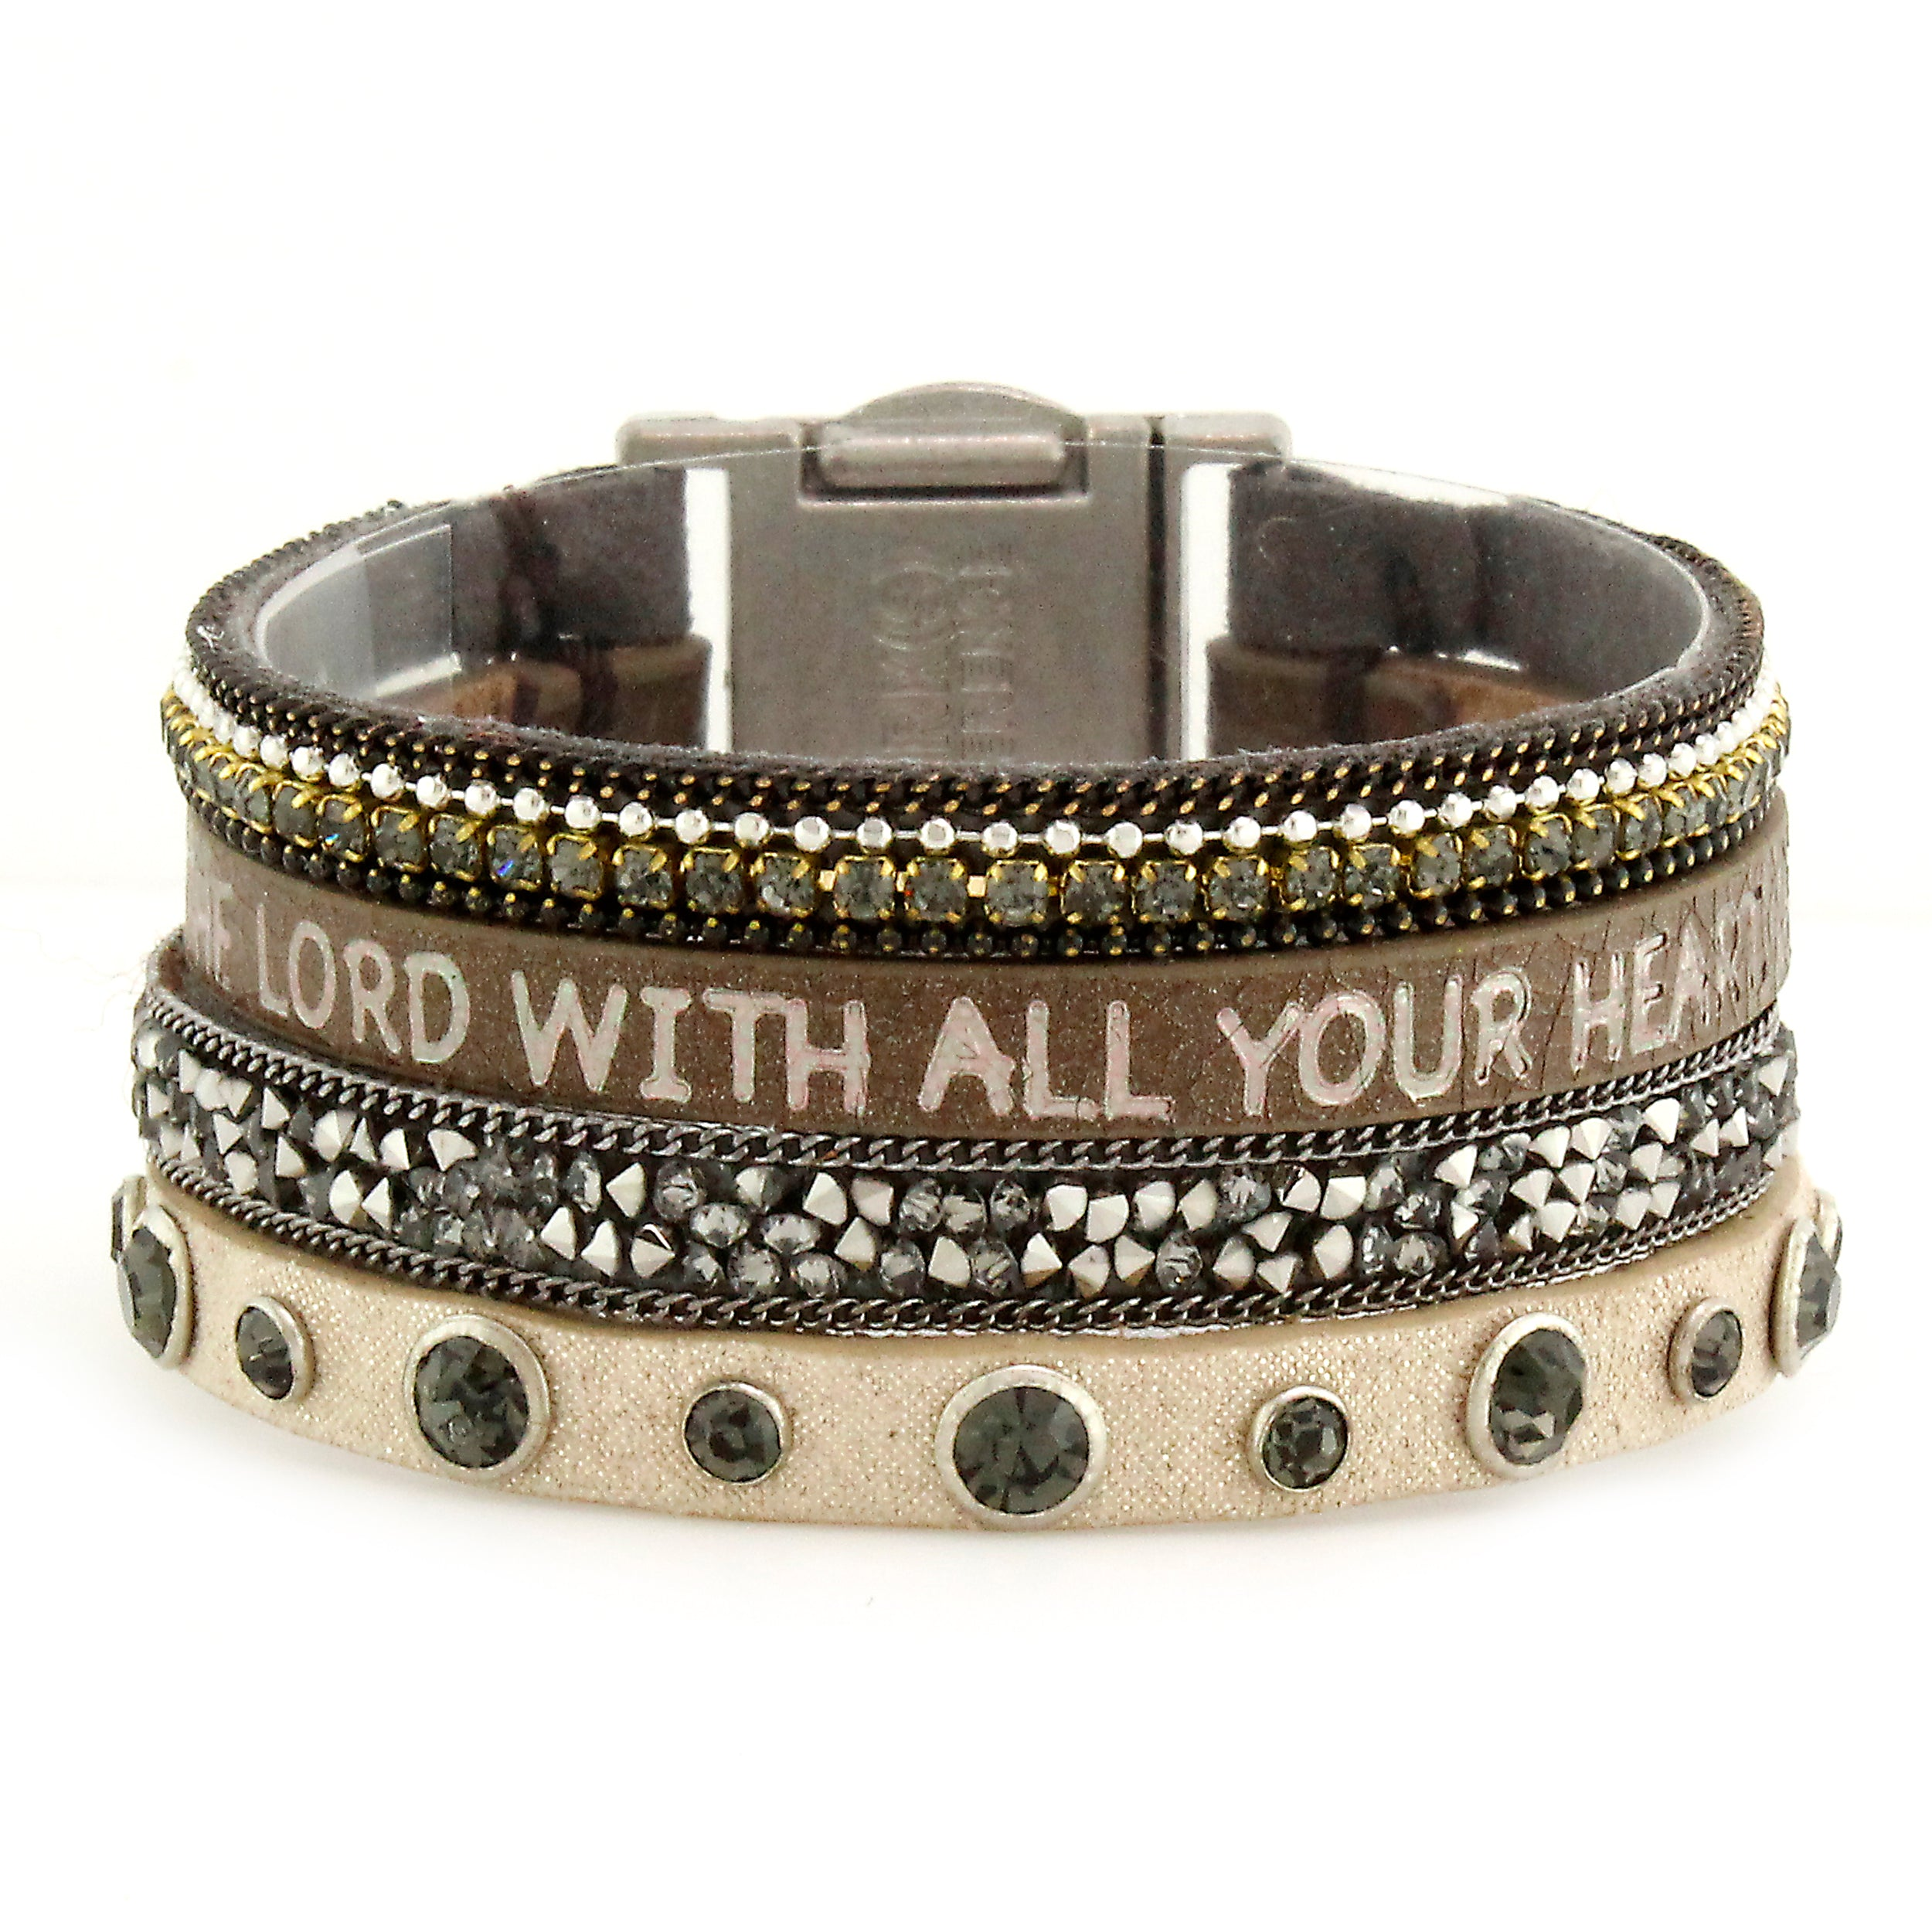 ROCKONLINE | New Creation Church | Joseph Prince | Bracelets | Fashion | Accessories | Apparel | Youth | Leather Bracelet, Unity Quad Bible | Leather Accessories | Goodworks Make A Difference | Christian Gifts | Rock Bookshop | Rock Bookstore | Star Vista | Free Delivery for Singapore Orders above $50.